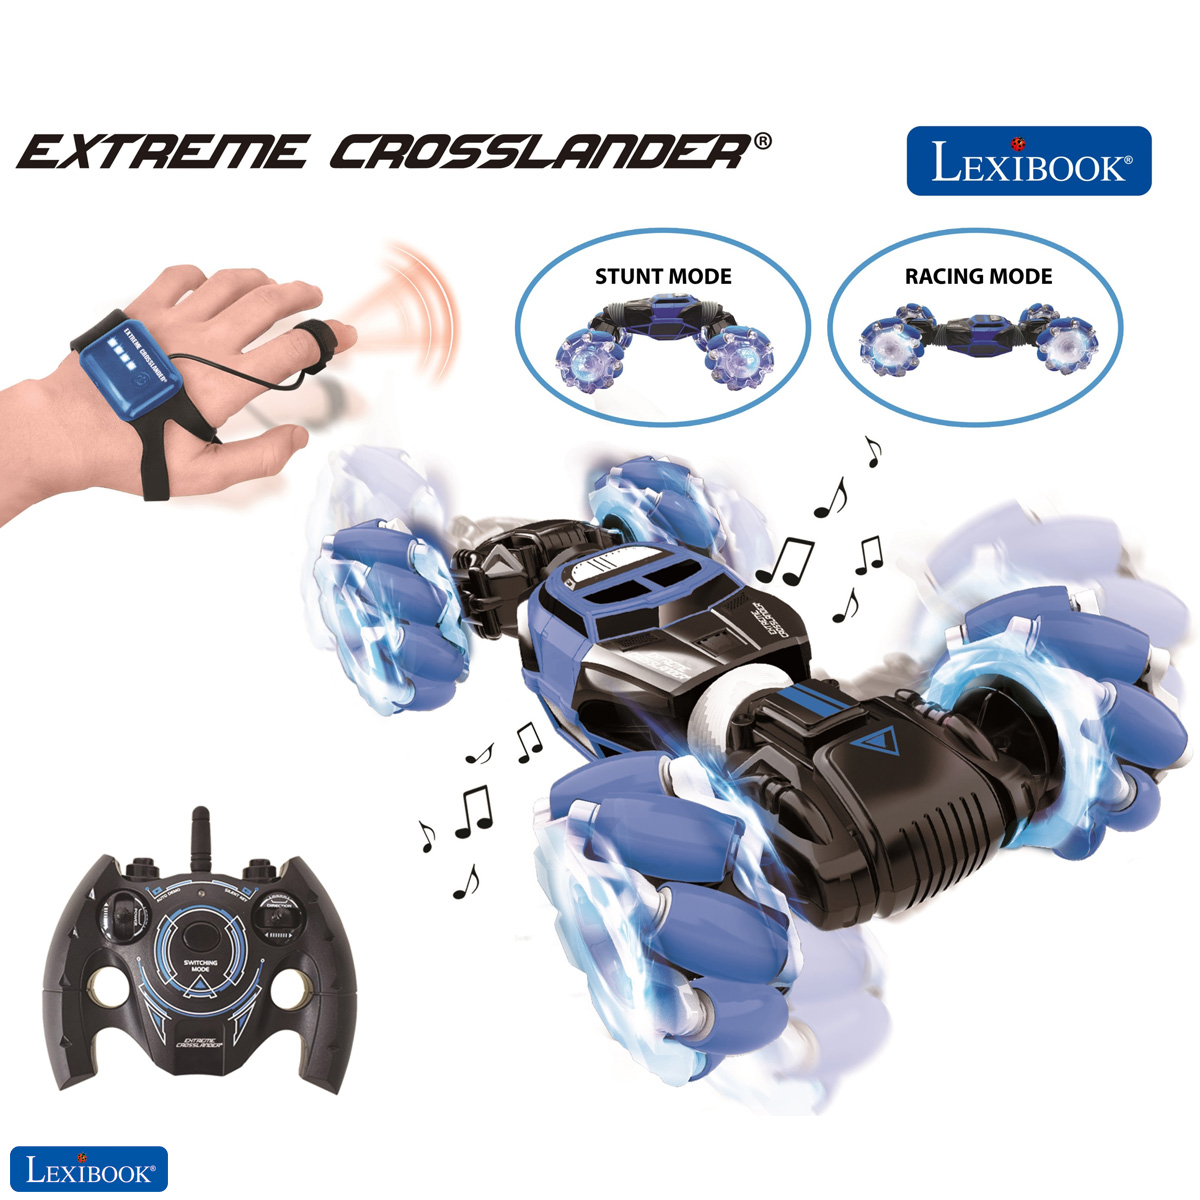 Lexibook - Extreme Crosslander - Rechargeable Radio Controlled Stunt Car with lights and sounds with both motion and remote control (RC50)